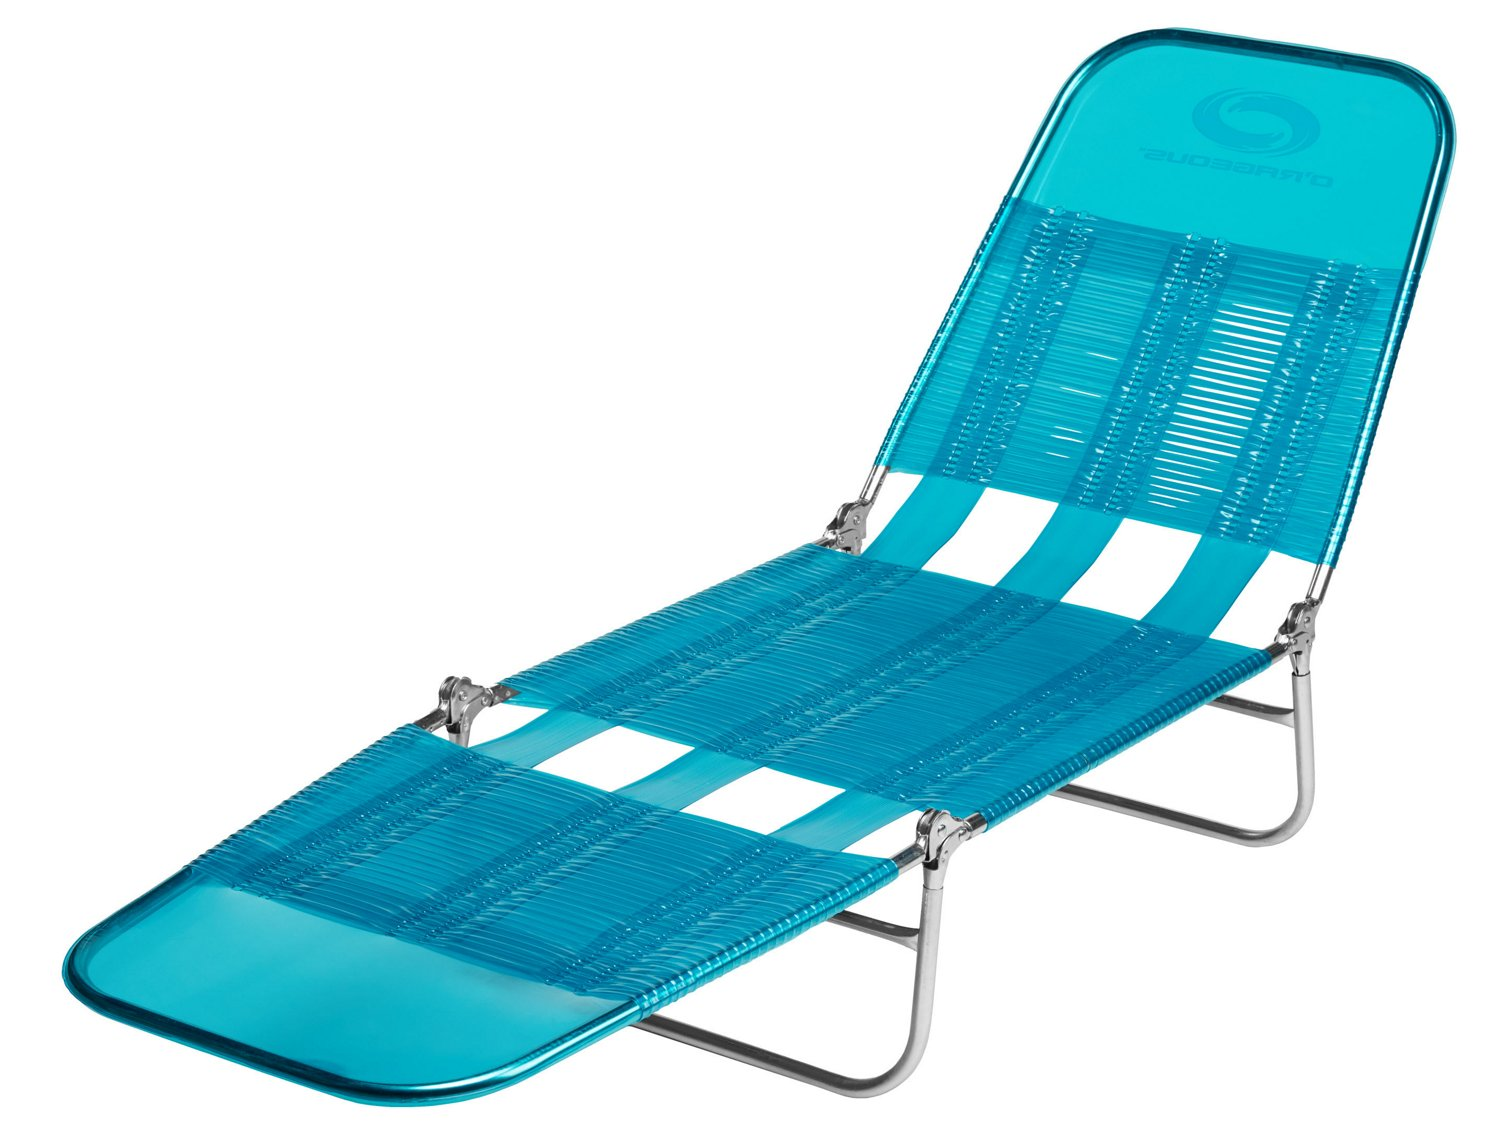 Mosaic Vinyl Strap Lounger  sc 1 st  Academy Sports + Outdoors & Beach Chairs | Beach Loungers Waterside Chairs Folding Chairs ...